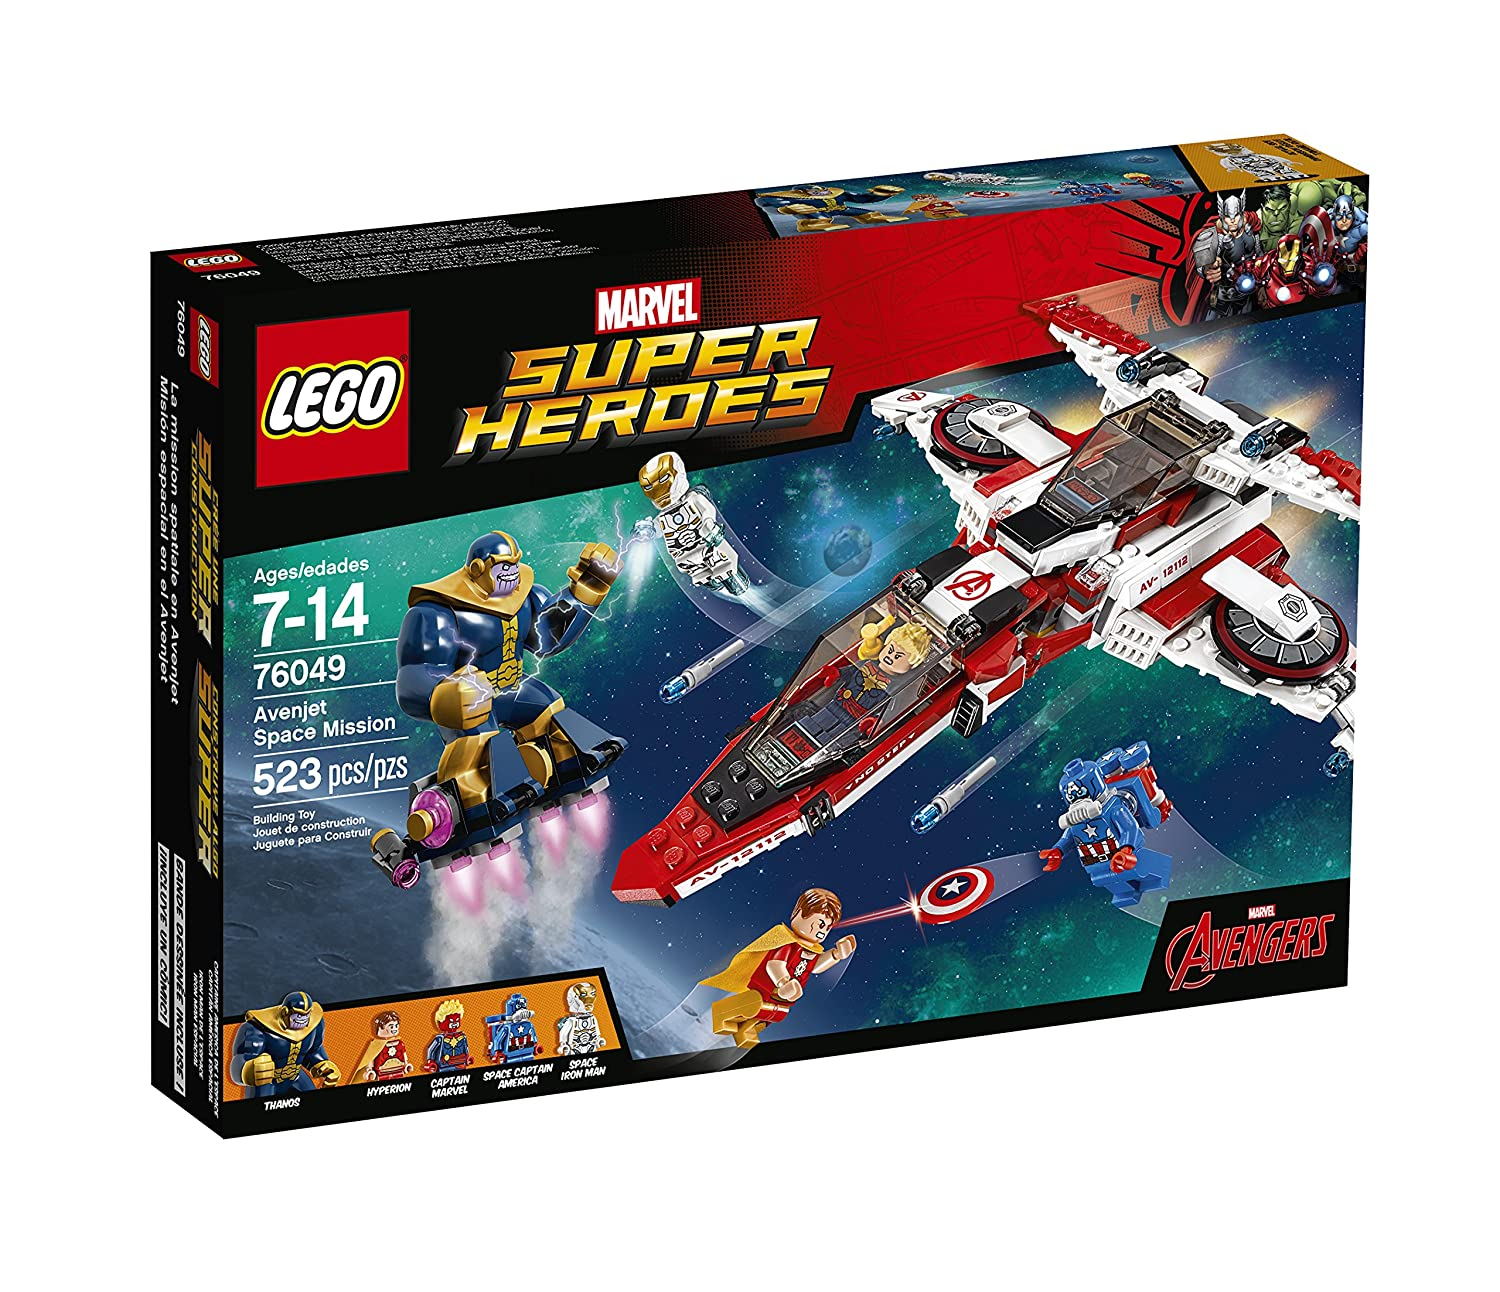 Top 9 Best LEGO Captain America Sets Reviews in 2020 8